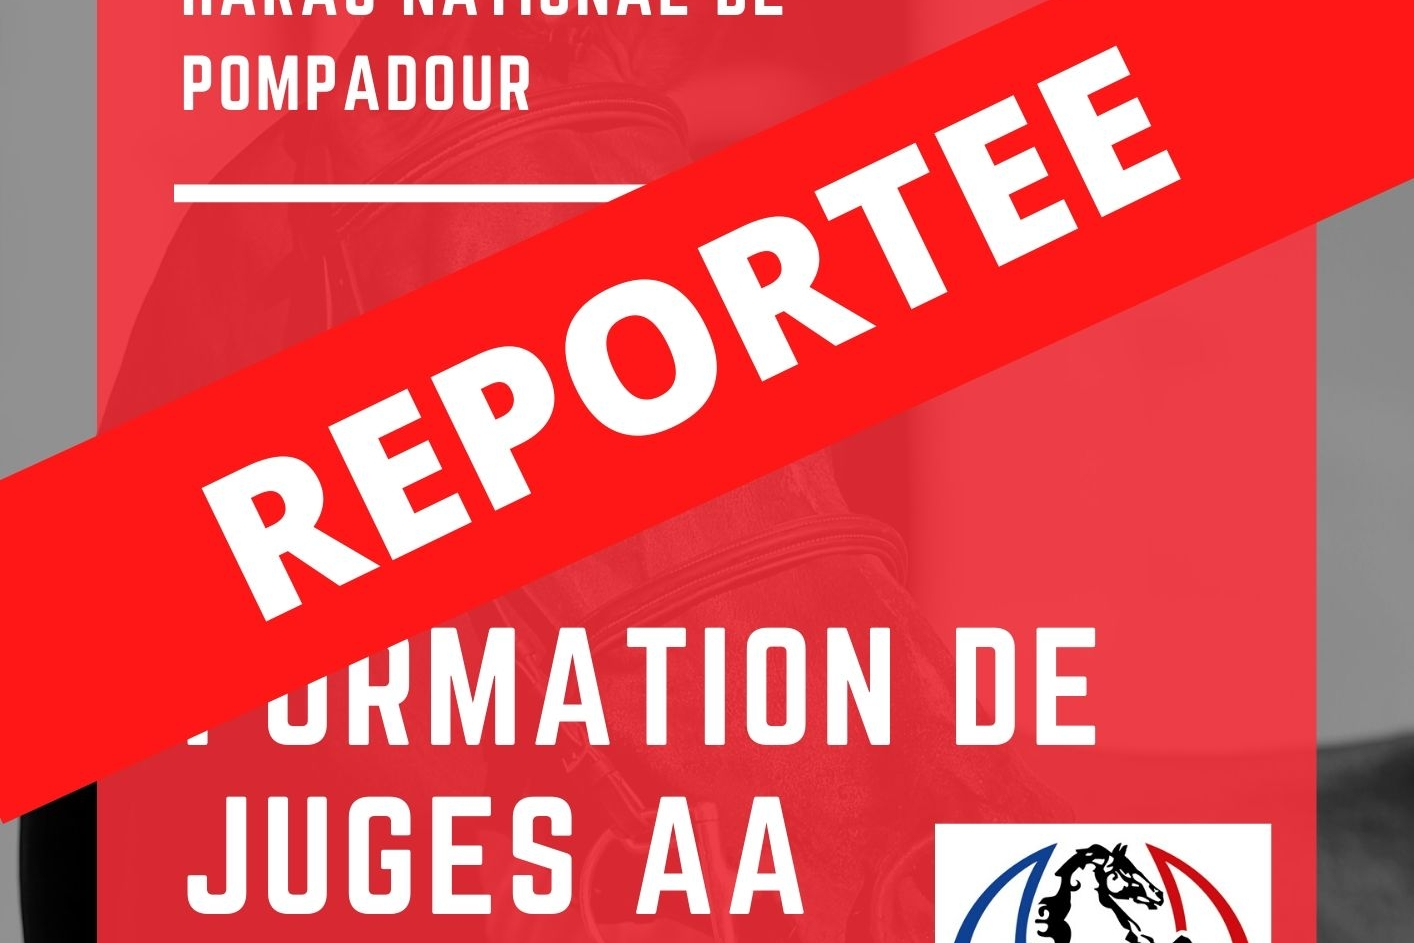 REPORT de la formation de juges AA